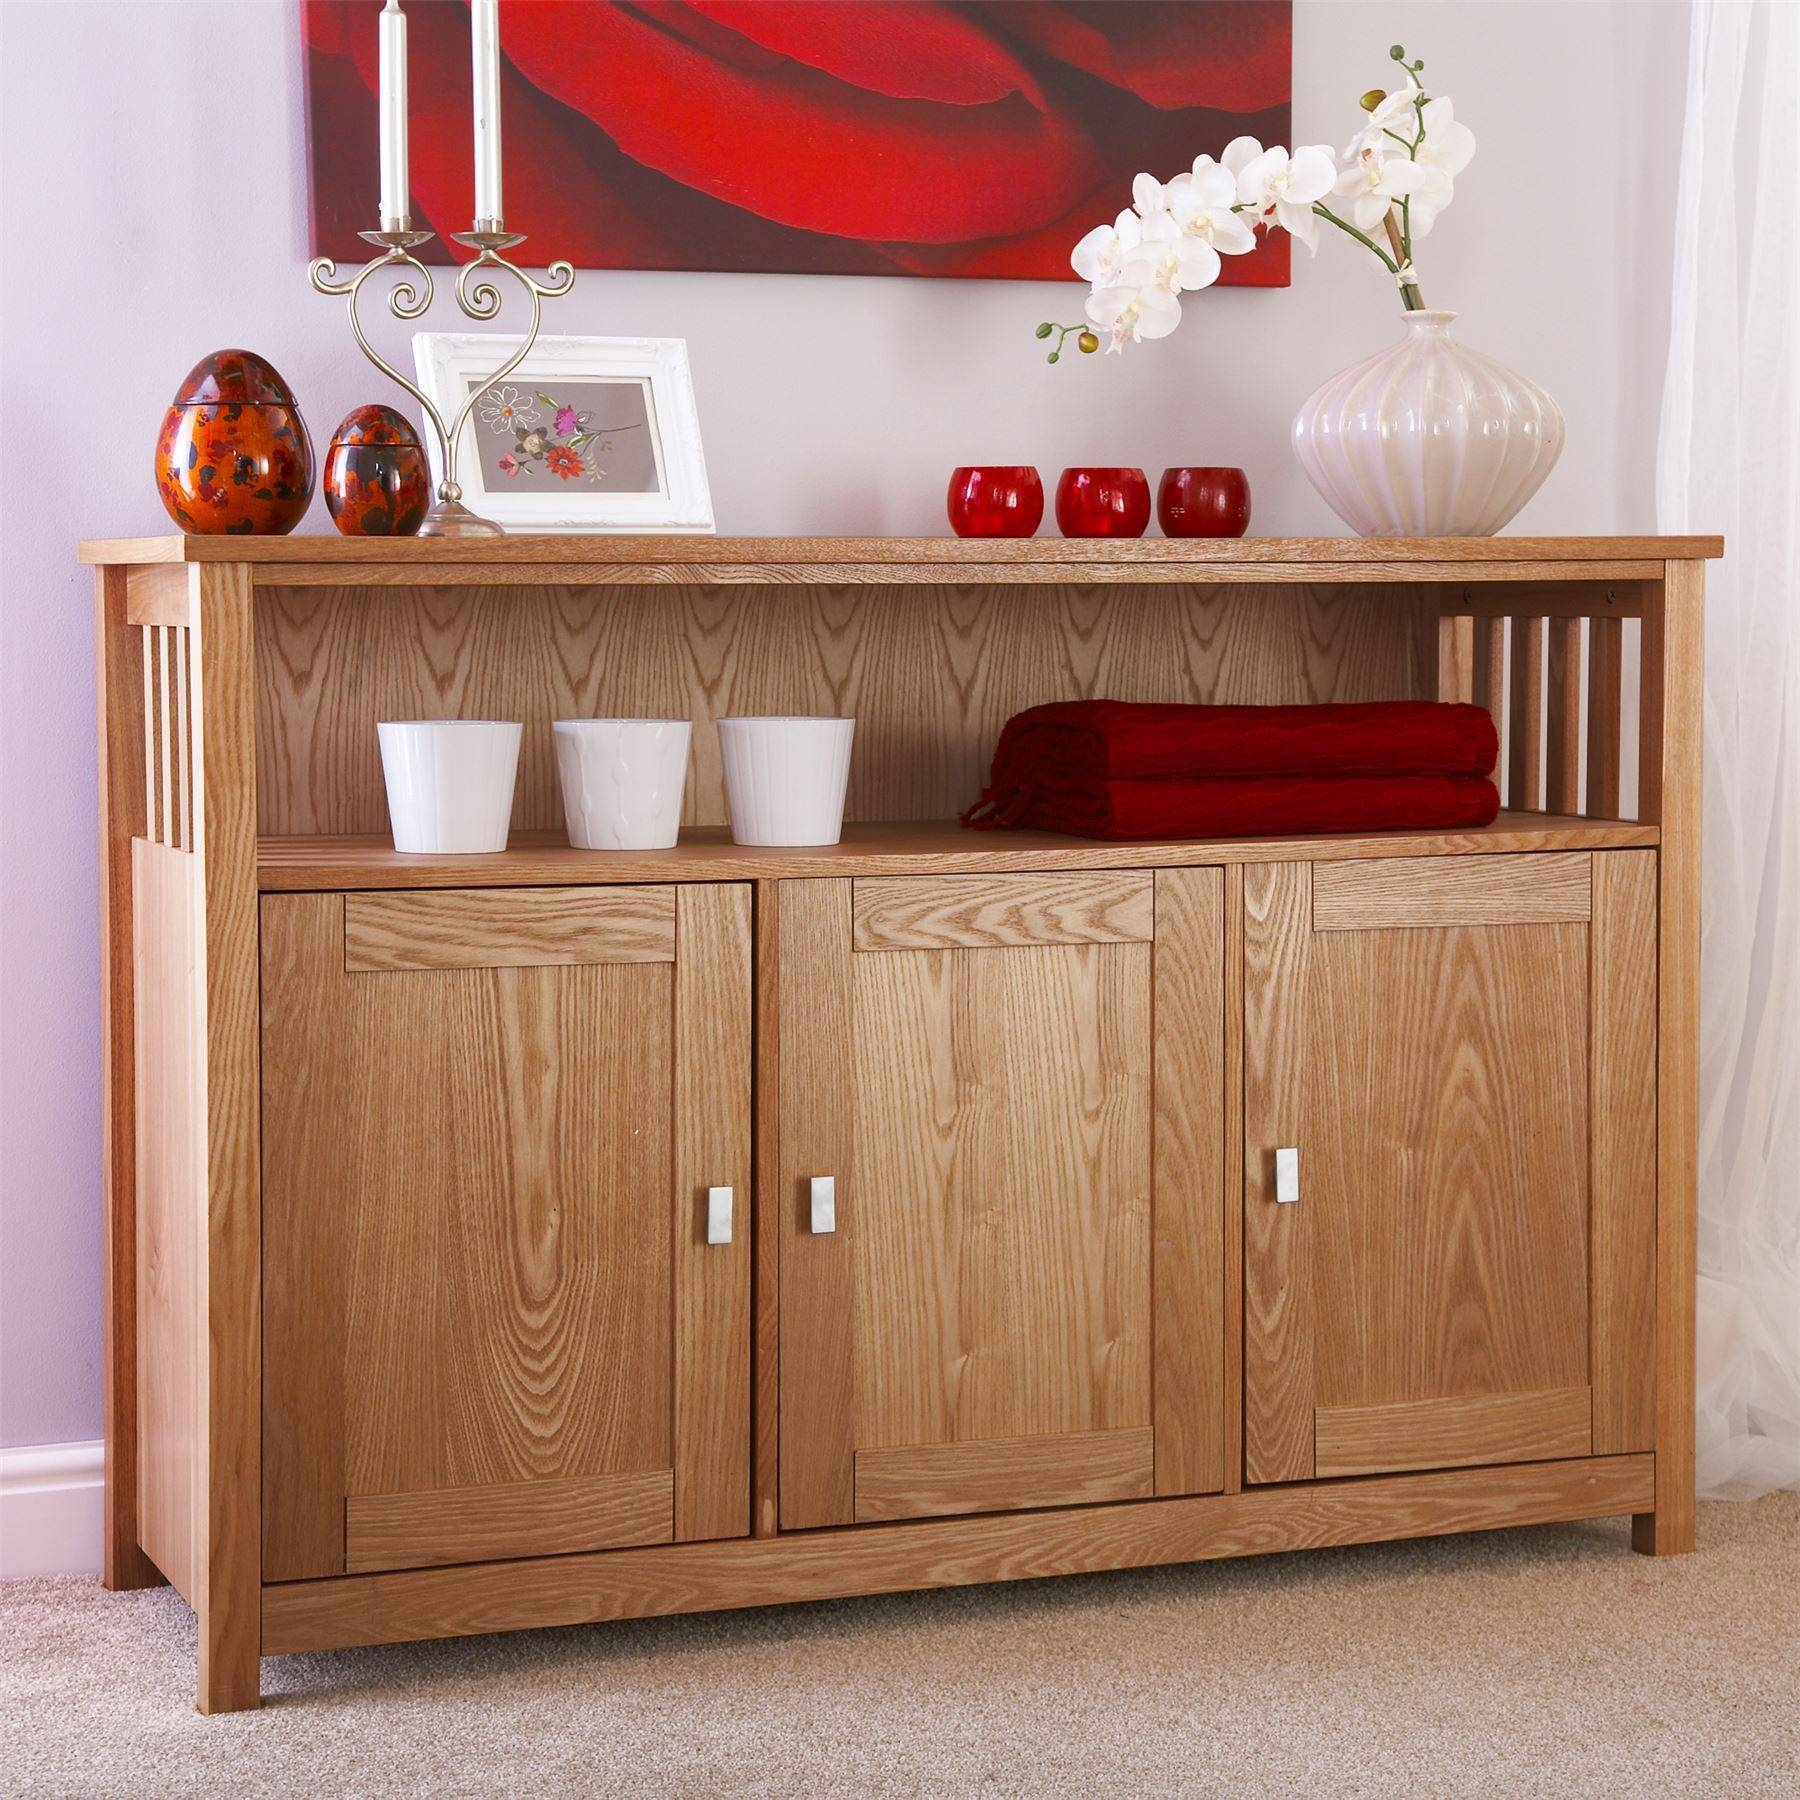 Pleasing Sideboard For Living Room For Living Room Ideas Dining pertaining to Living Room Sideboards (Image 21 of 30)